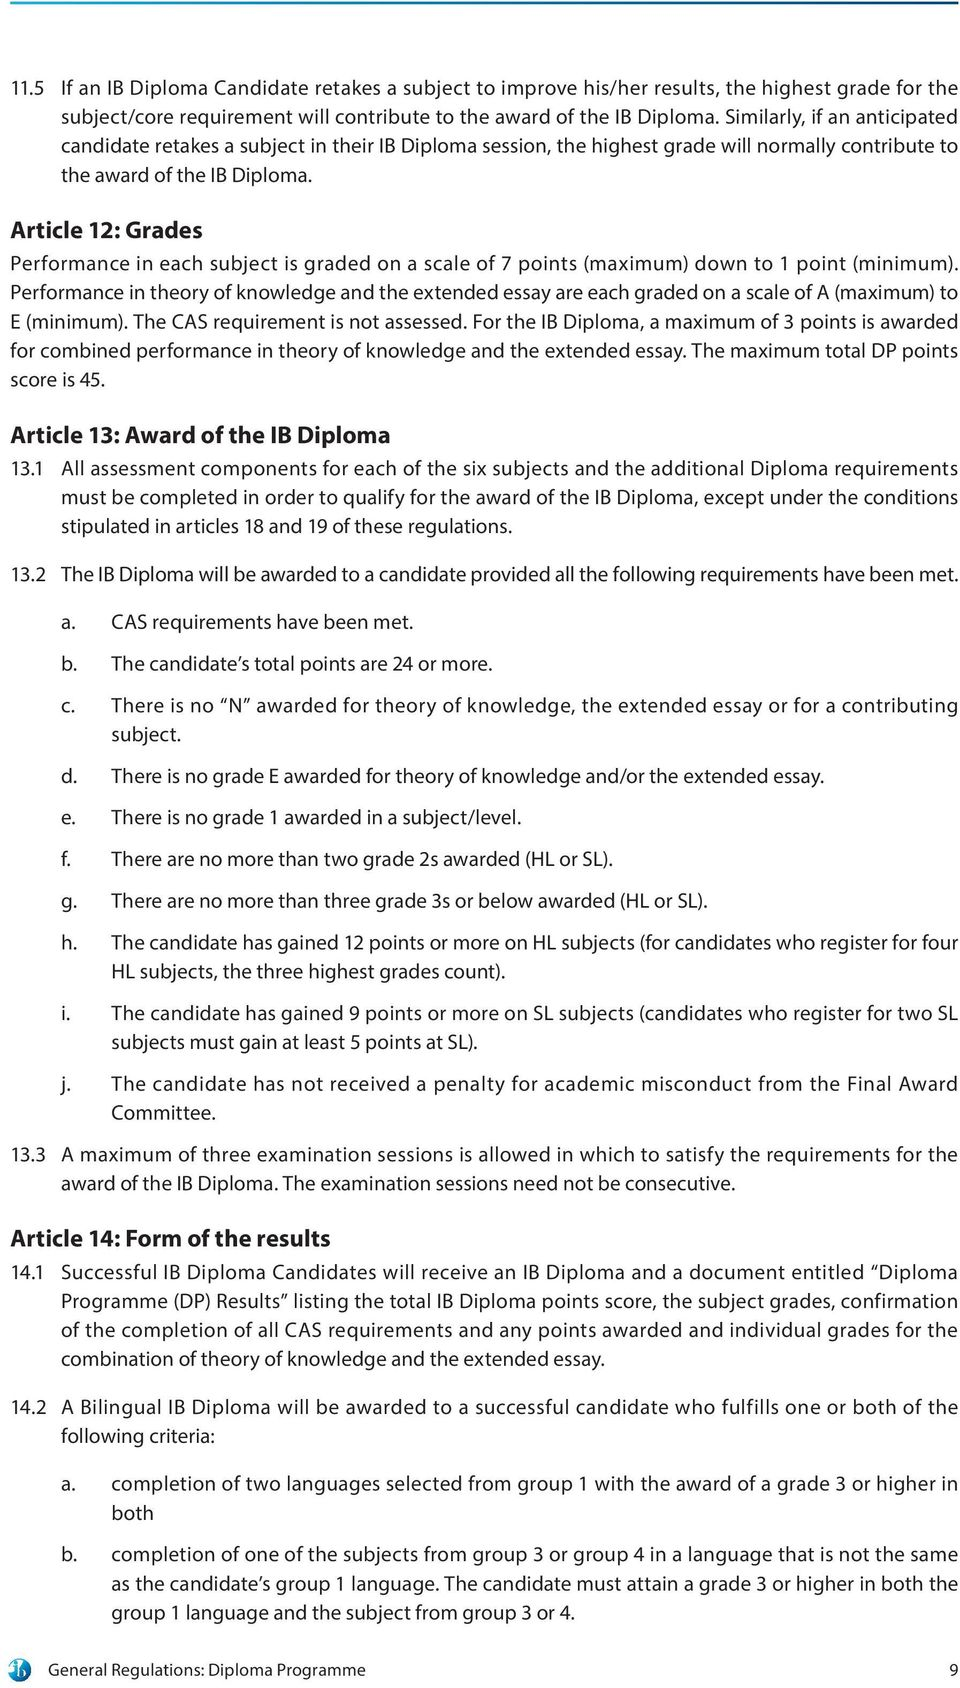 Article 12: Grades Performance in each subject is graded on a scale of 7 points (maximum) down to 1 point (minimum).